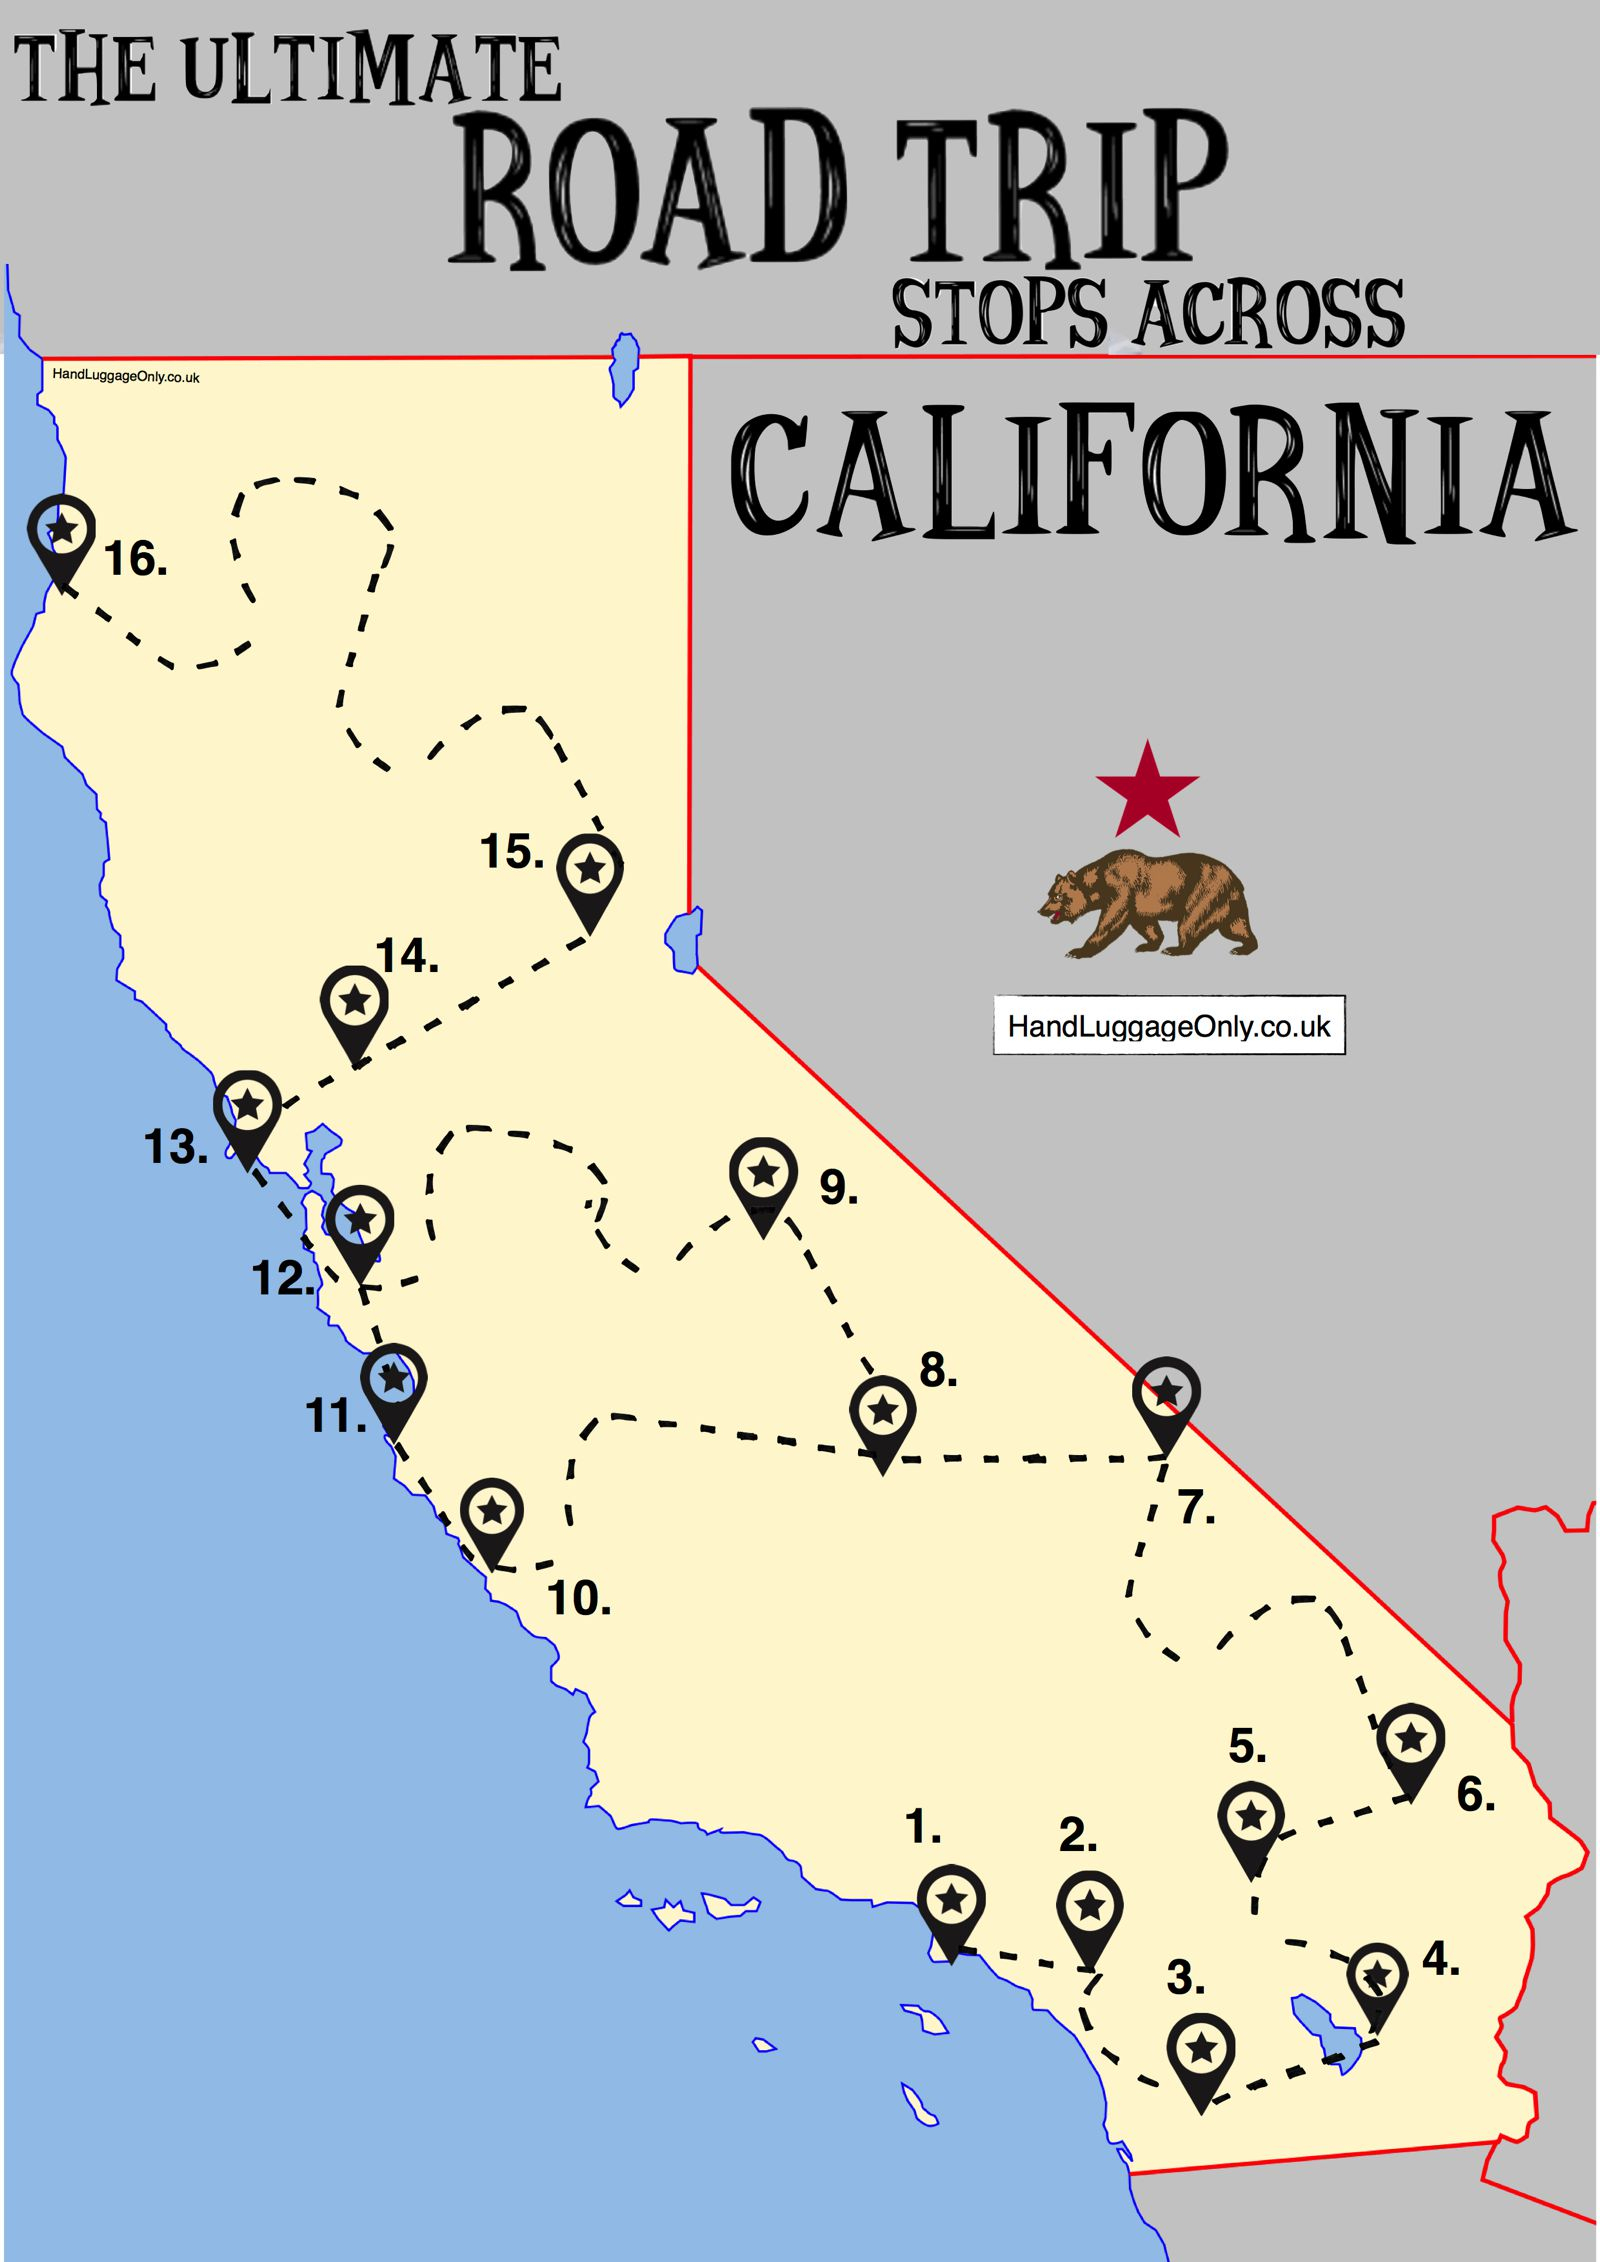 The Ultimate Road Trip Map Of Places To Visit In California - Hand - California Vacation Map